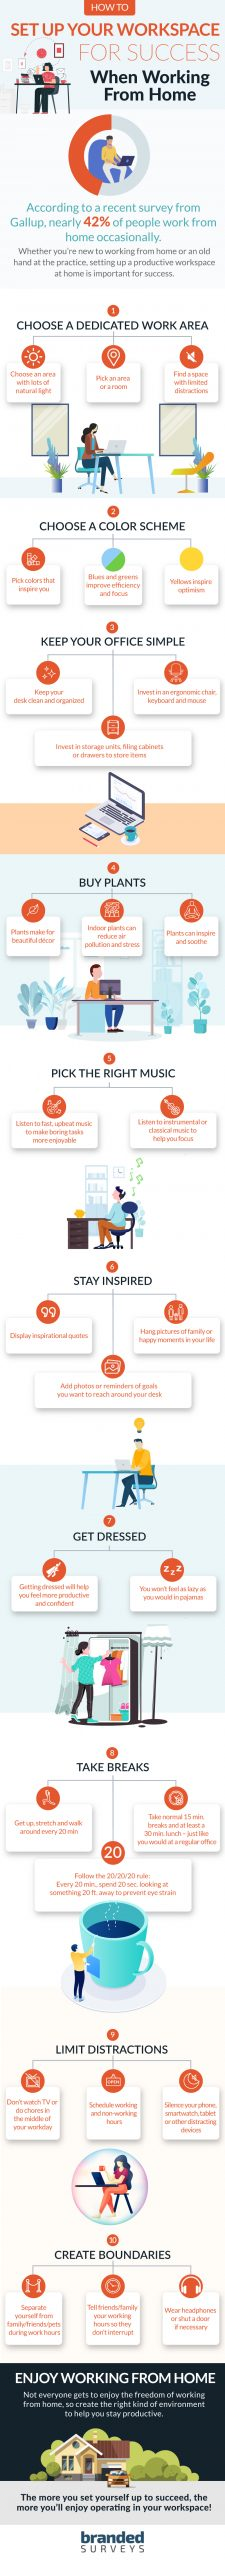 infographic: how to setup a home office